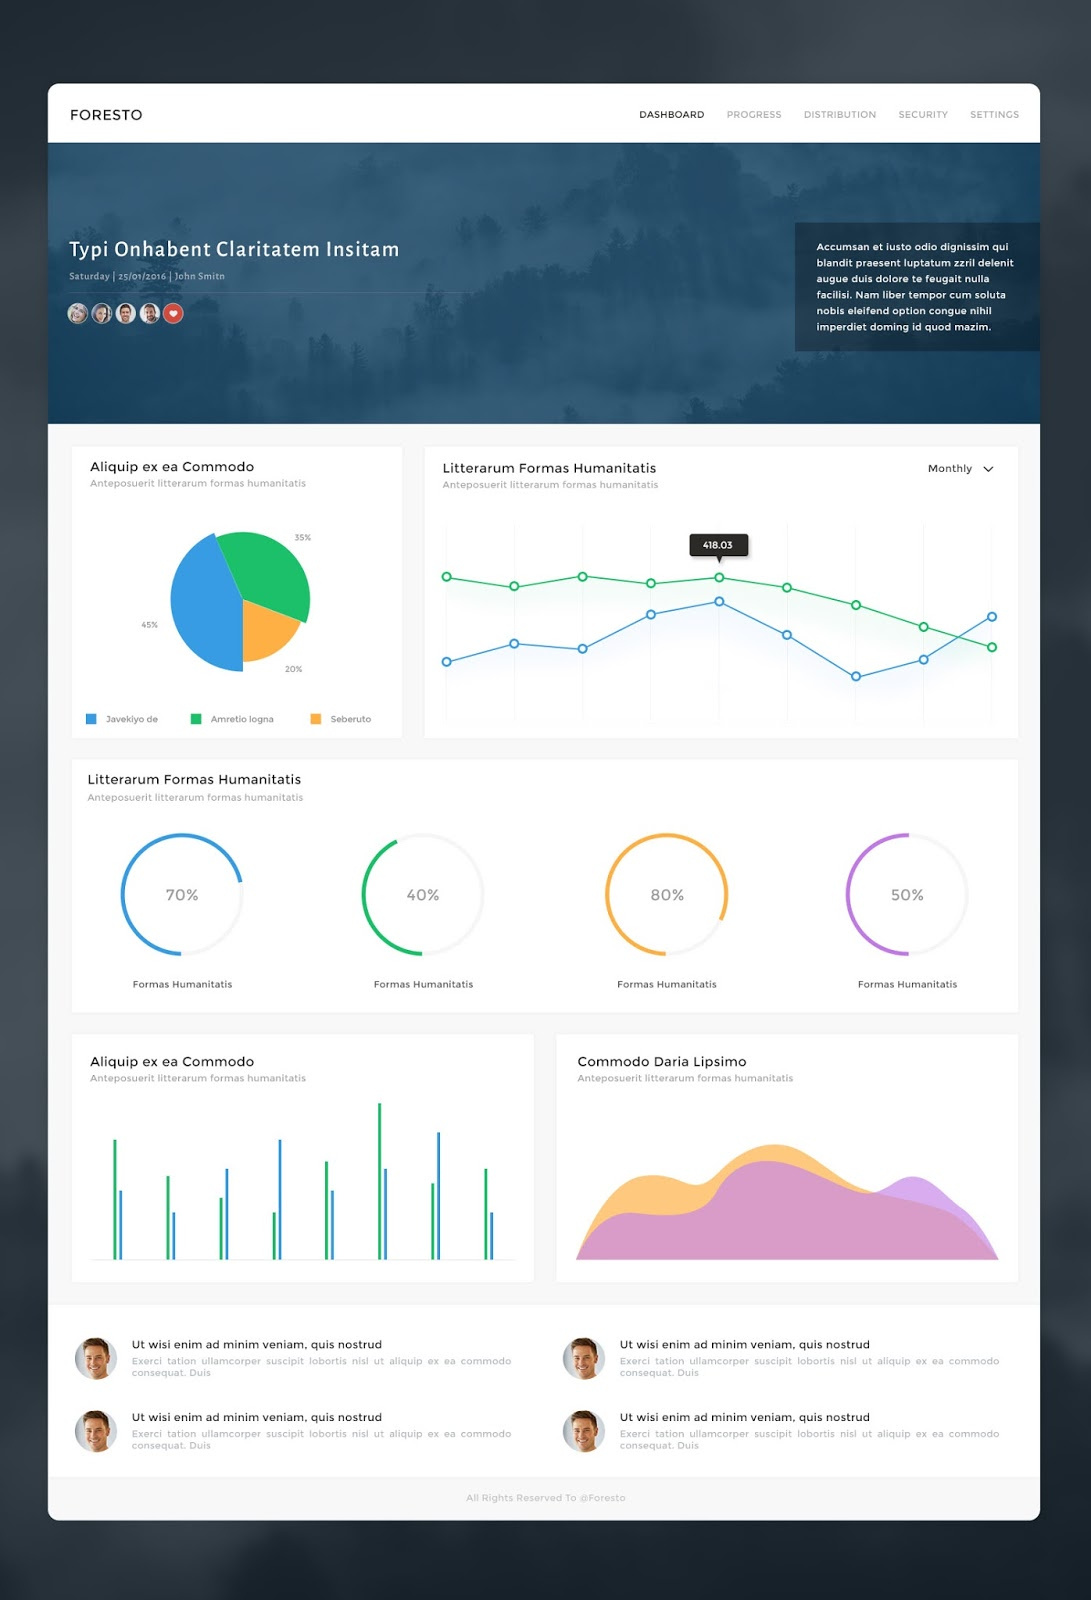 FORESTO - Dashboard template free psd